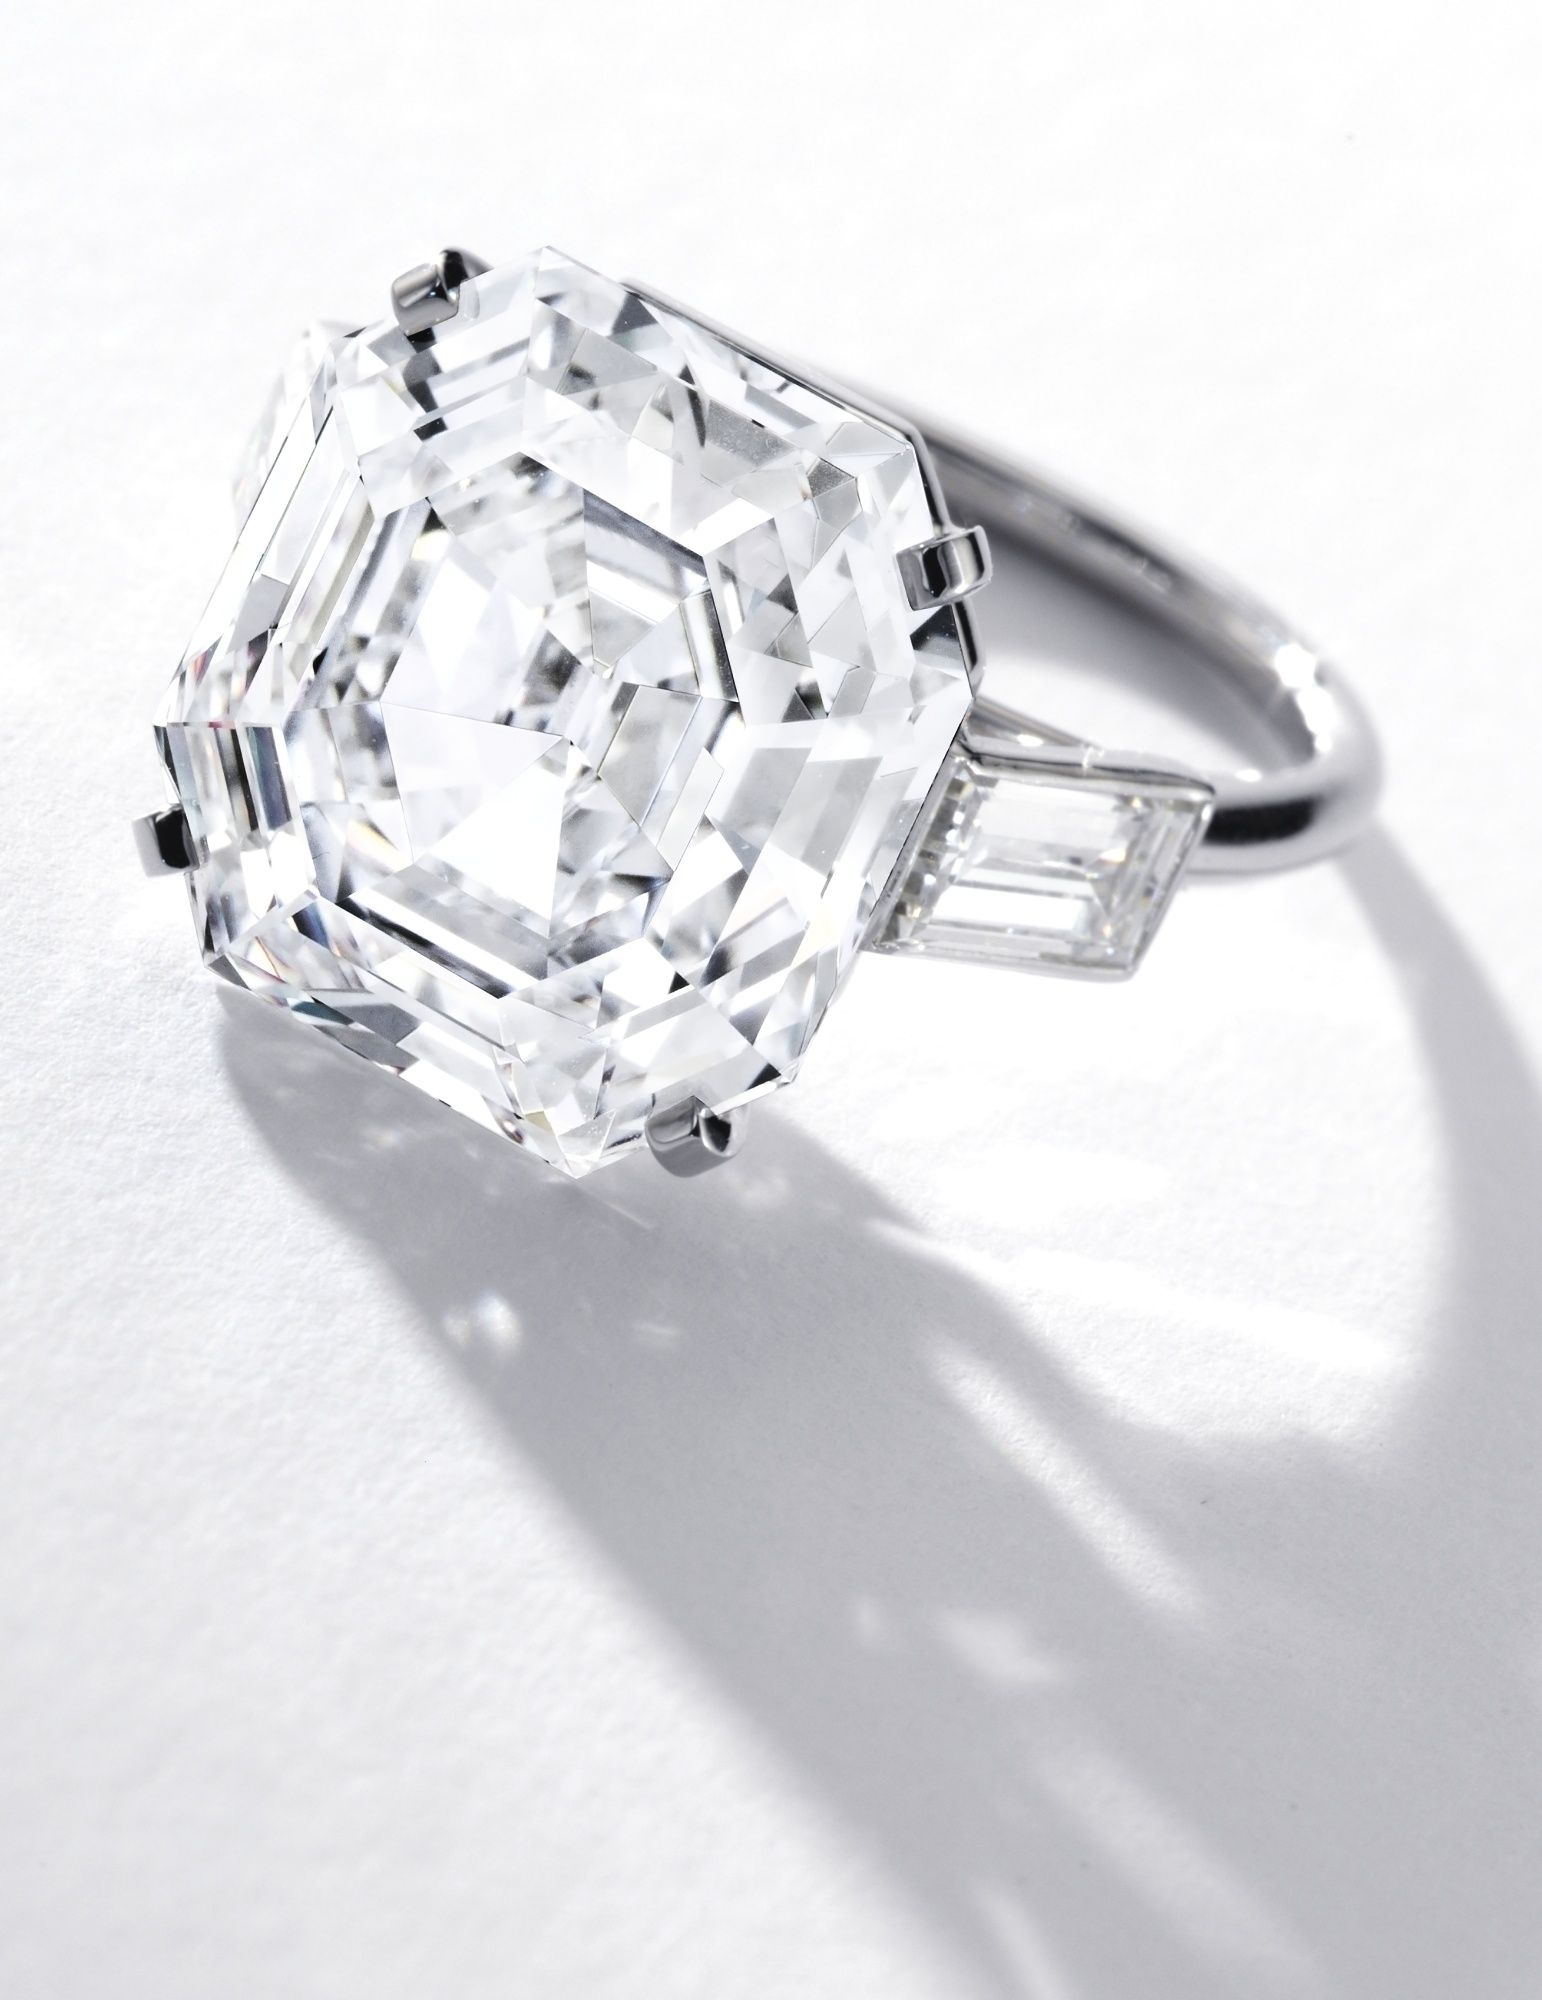 Very Fine Diamond Ring Cartier Set With A 13 60 Carat Cut Cornered Rectangular Step Cut Diamond Flanked By Two Baguette Diamonds Mounted In Platinum